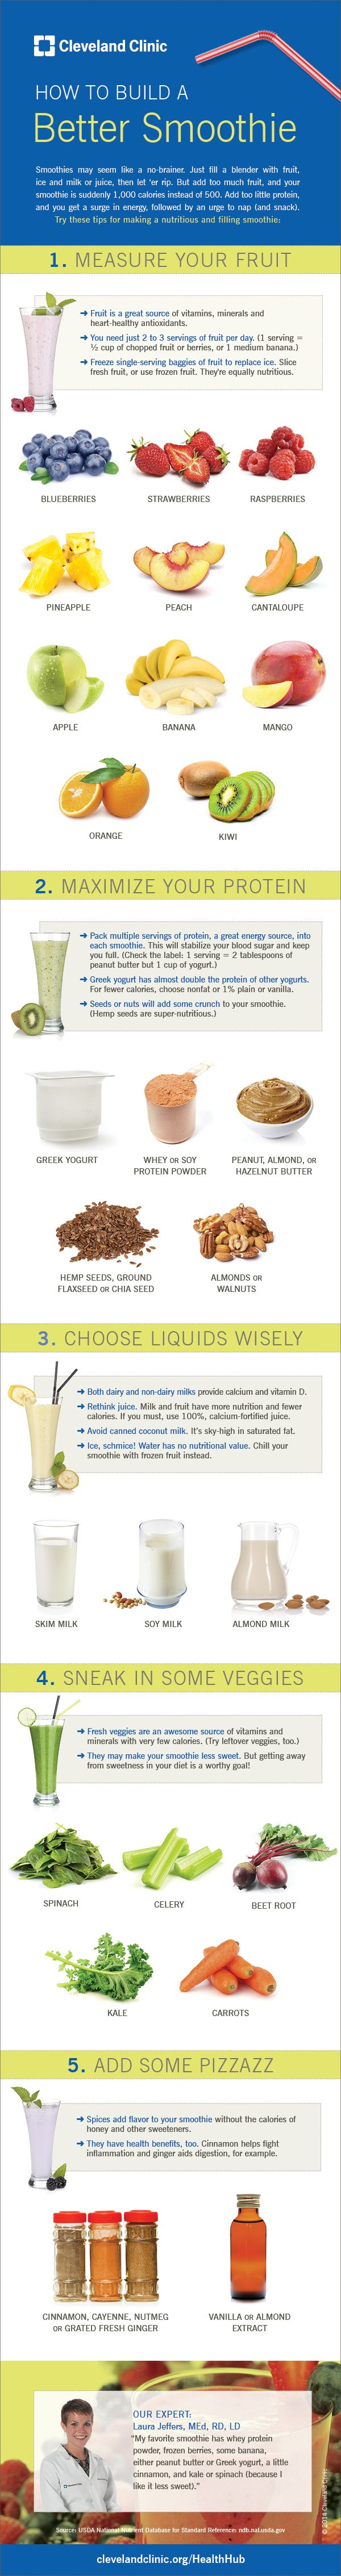 5 Ways to Build a Super Healthy Smoothie by clevelandclinic #Smoothie #Healthy #Infographic